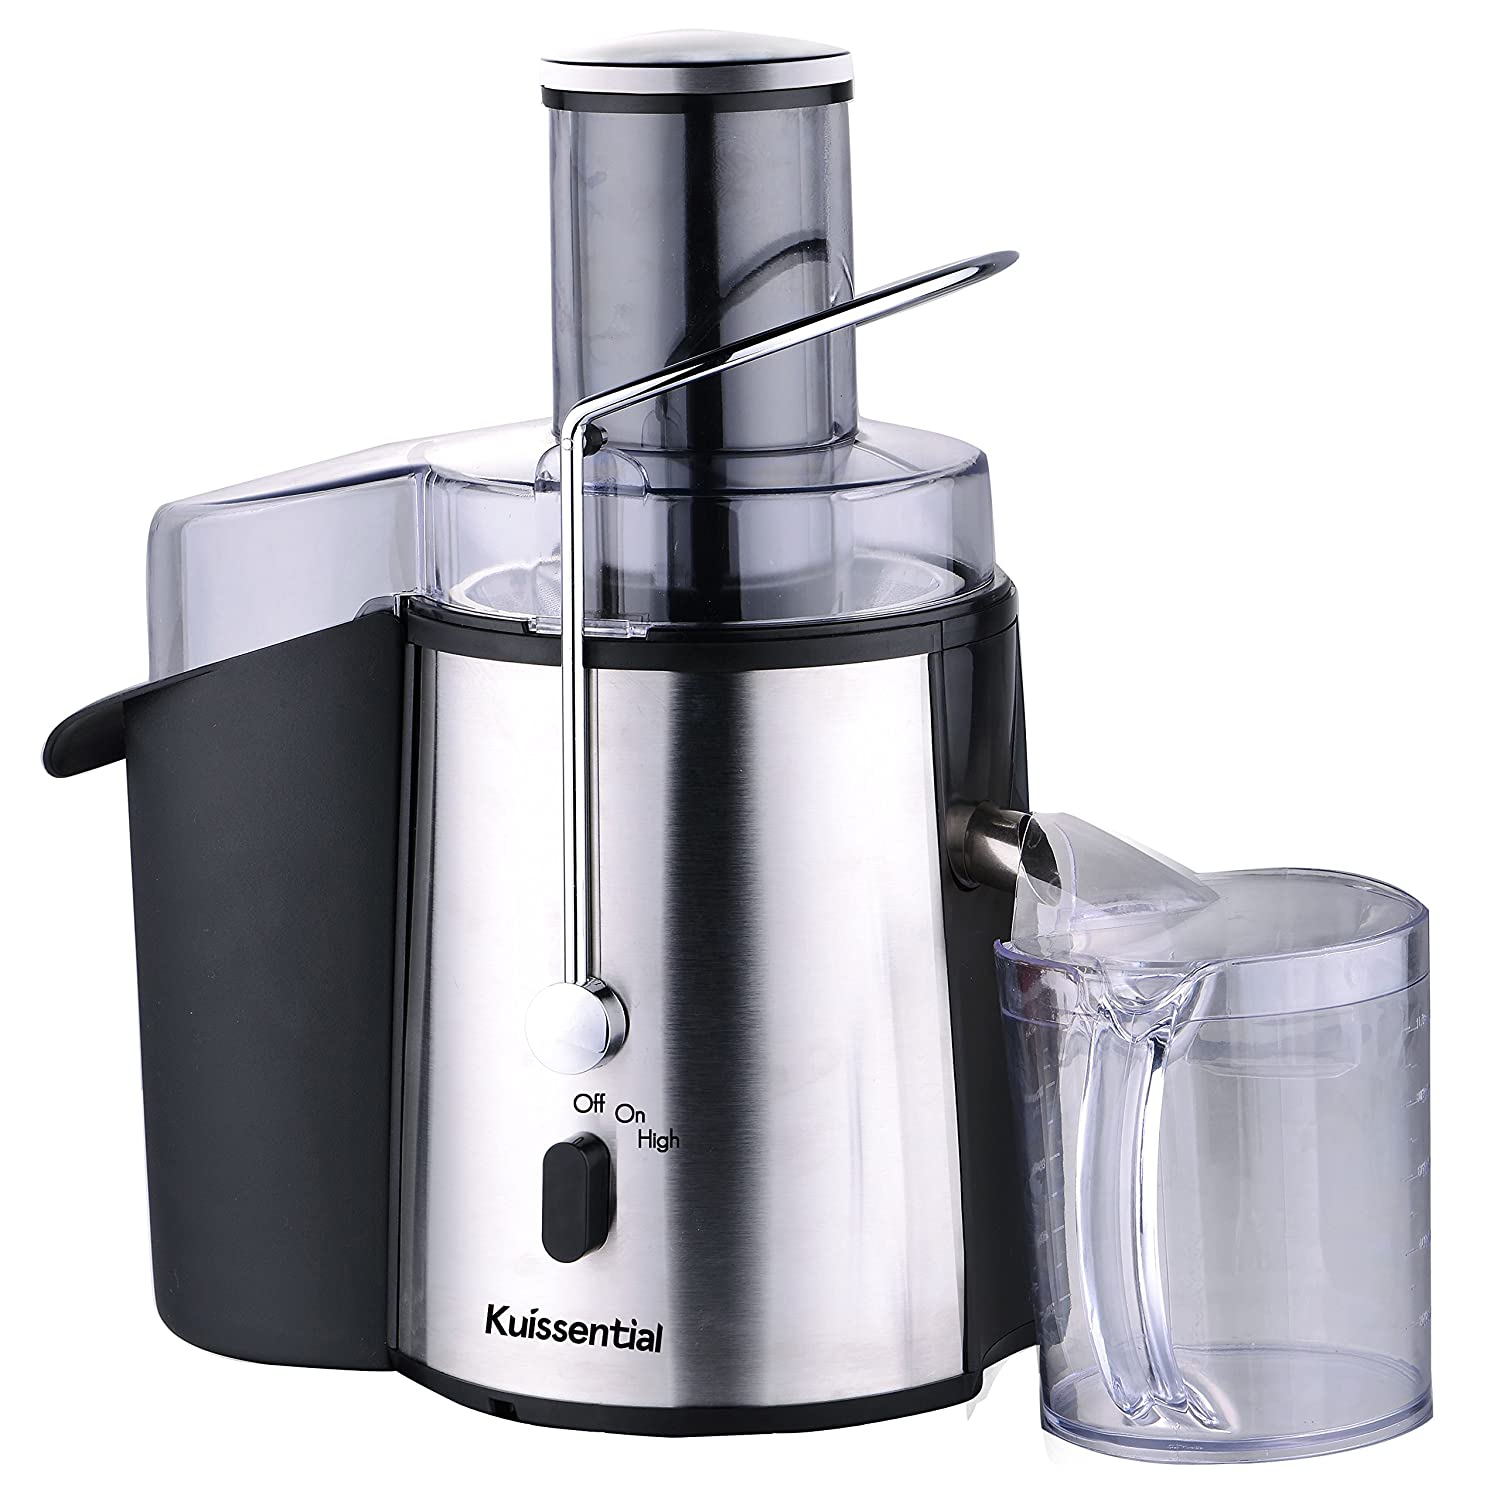 Best Juicers - Comparisons & Reviews of Top Rated Juicers Safety.com